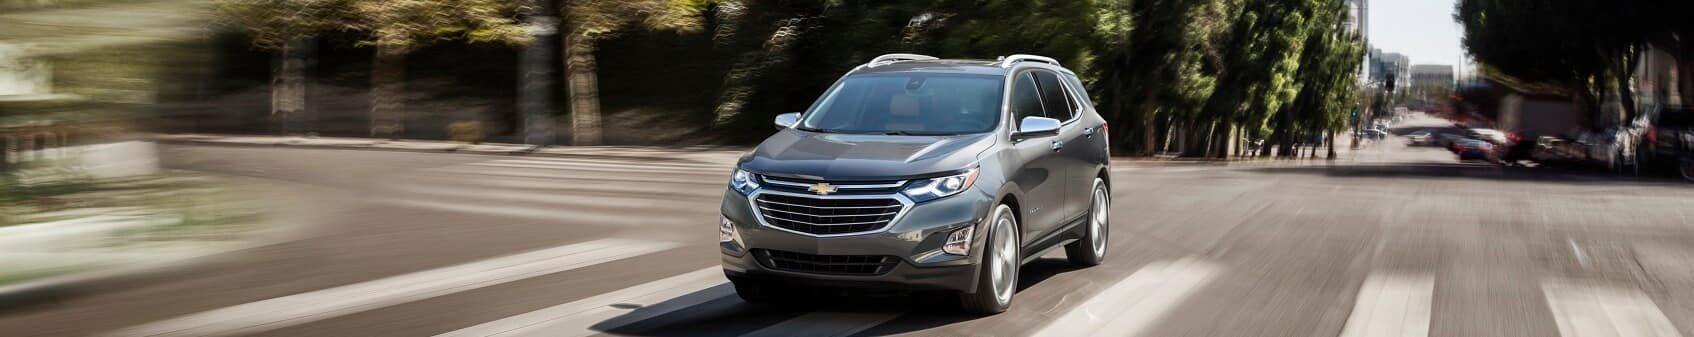 Chevy Equinox for Sale near Monroeville PA